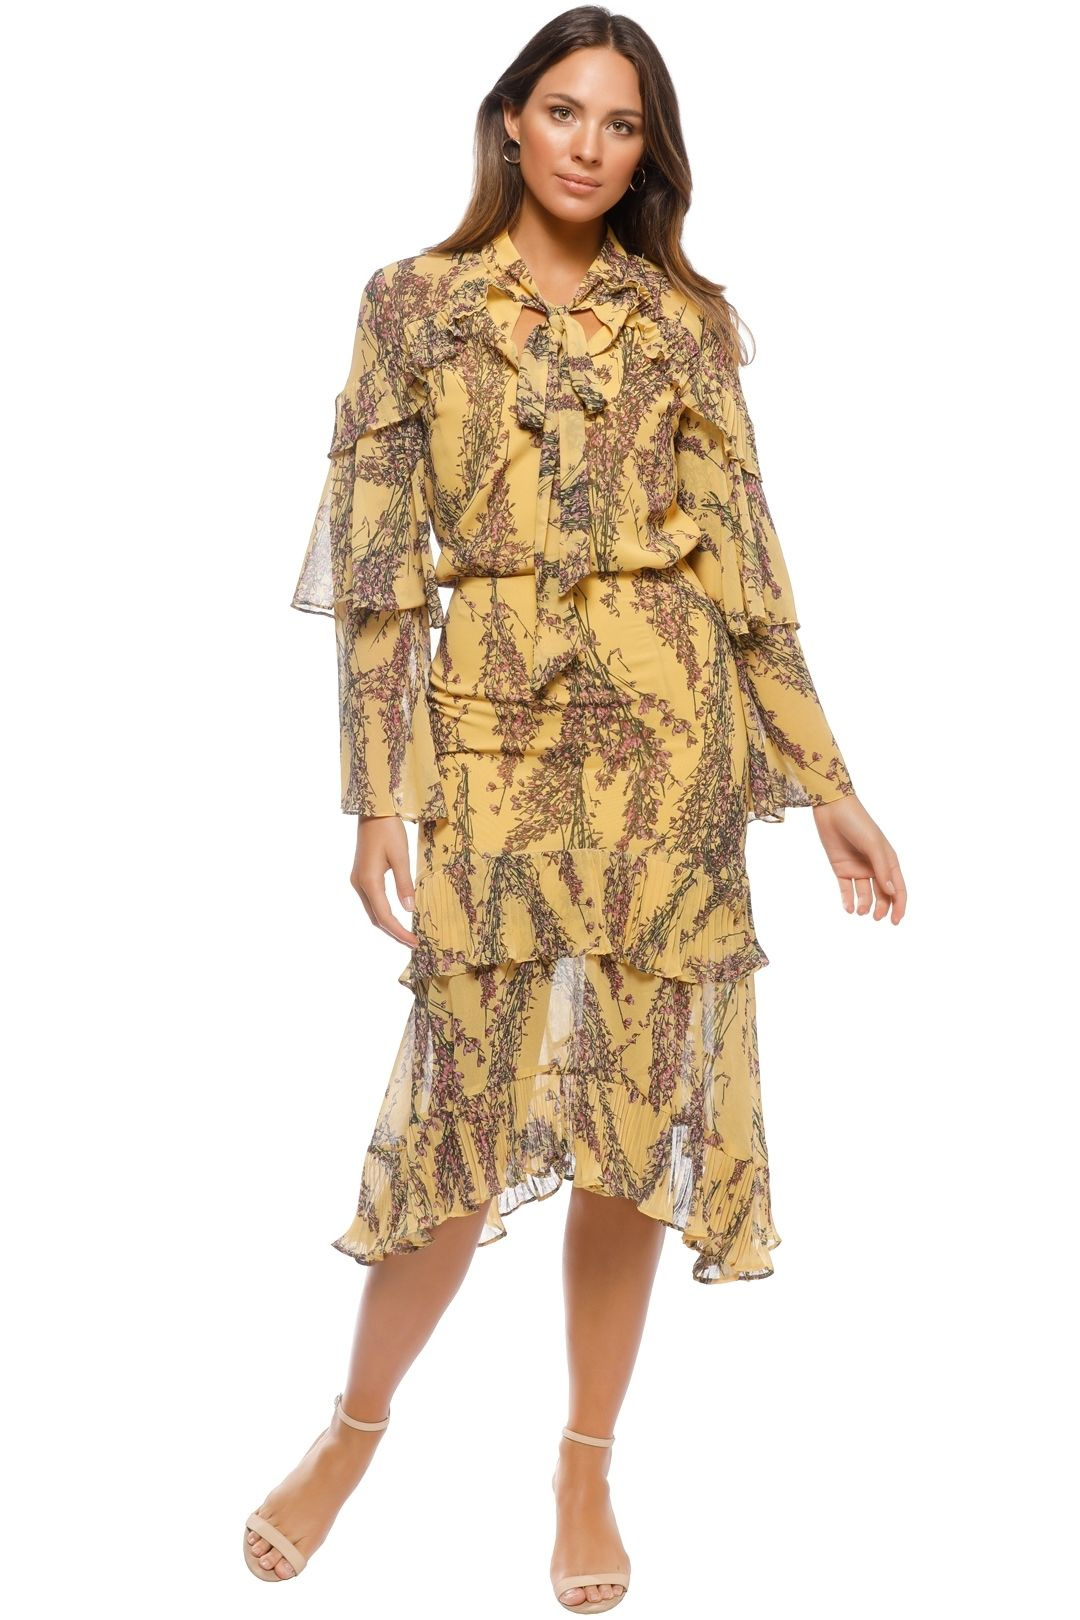 Keepsake the Label - Light Up Top and Skirt Set - Mustard Print - Front